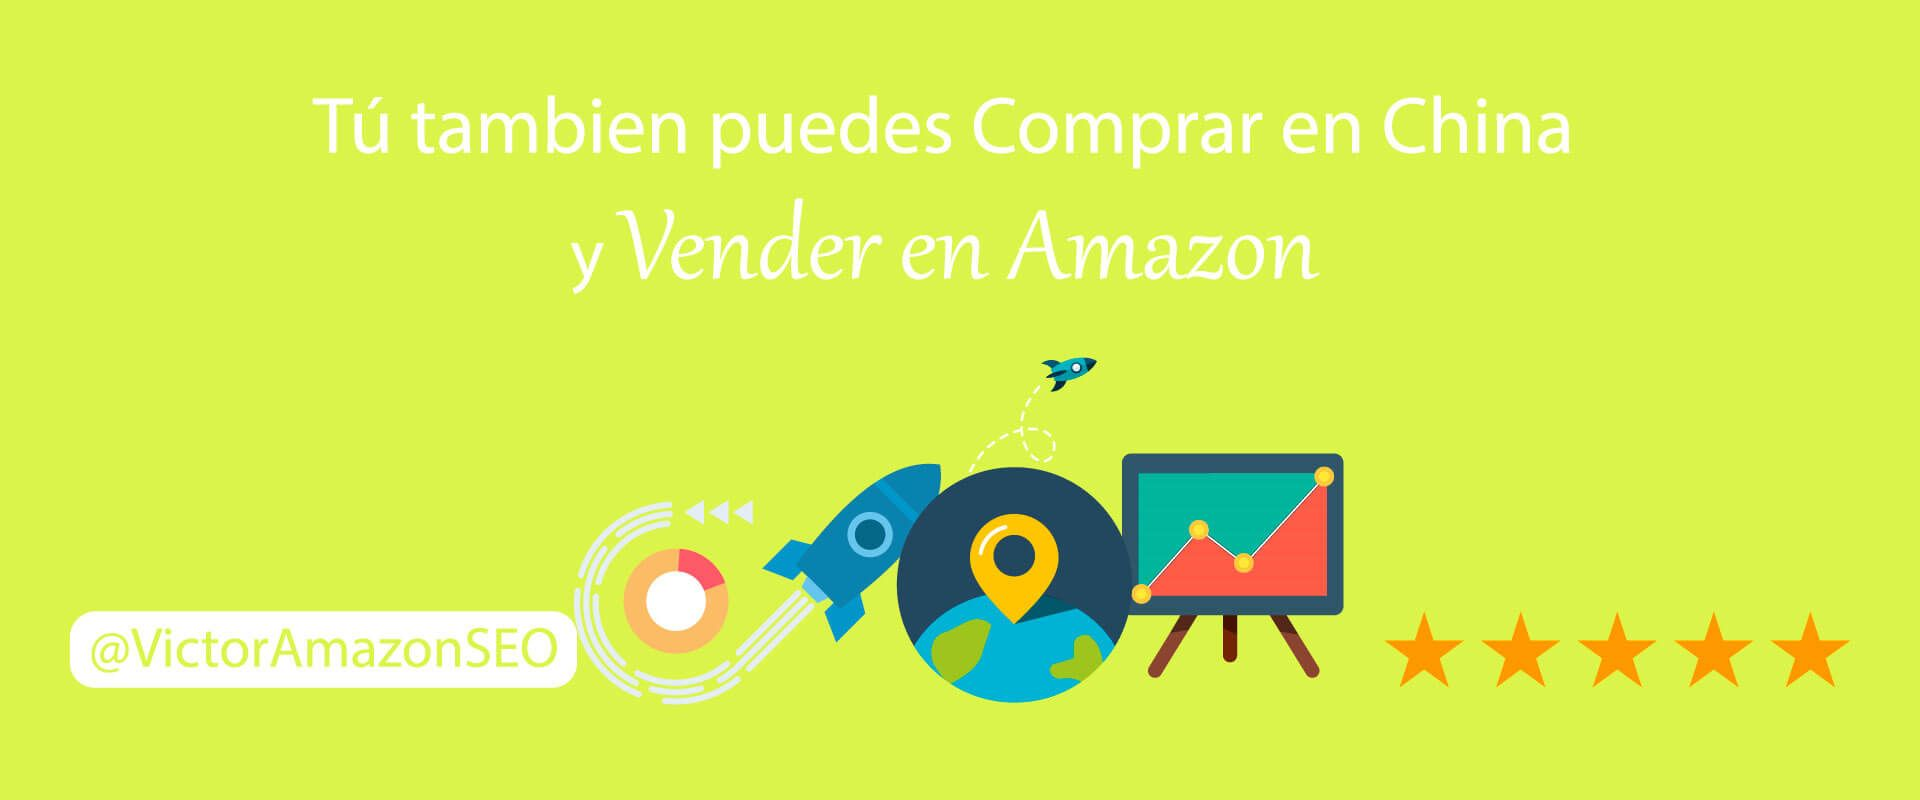 como comprar en china vender en amazon seller fba paginas web al por mayor productos baratos